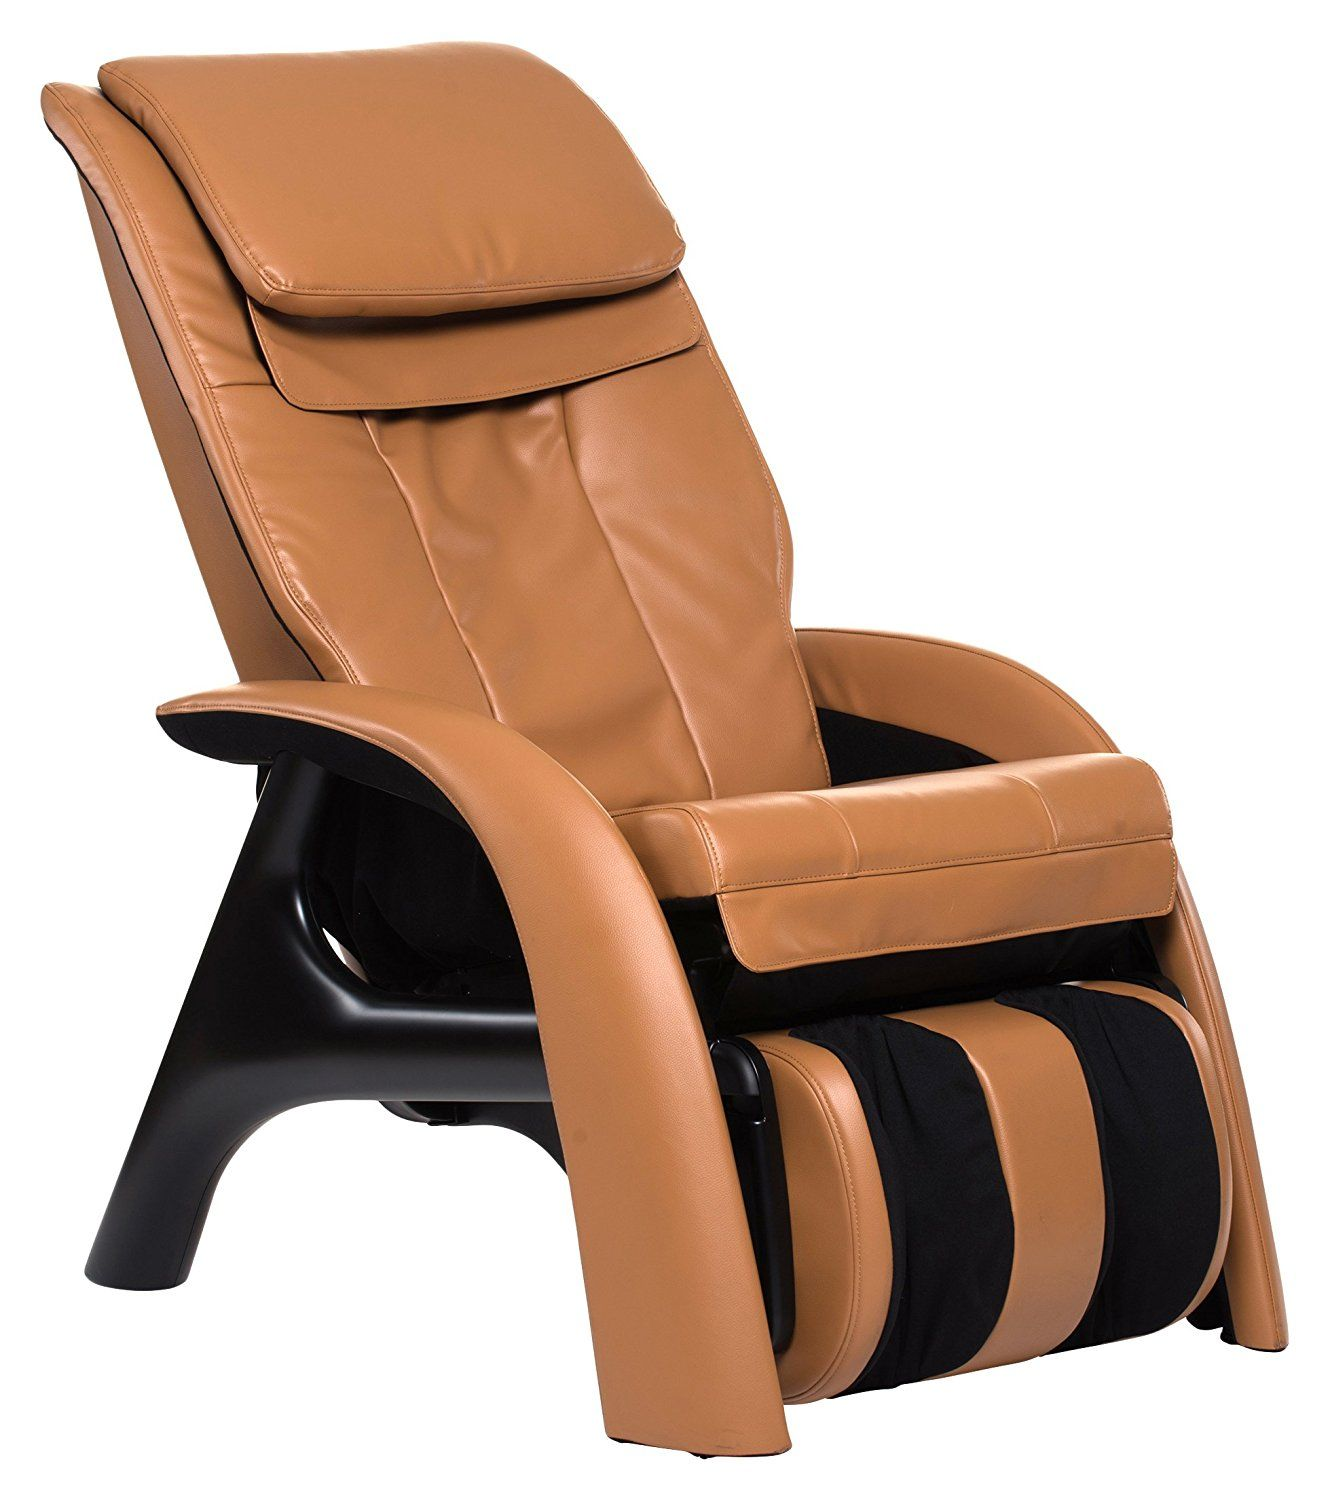 For those who are looking for a zero gravity massage chair